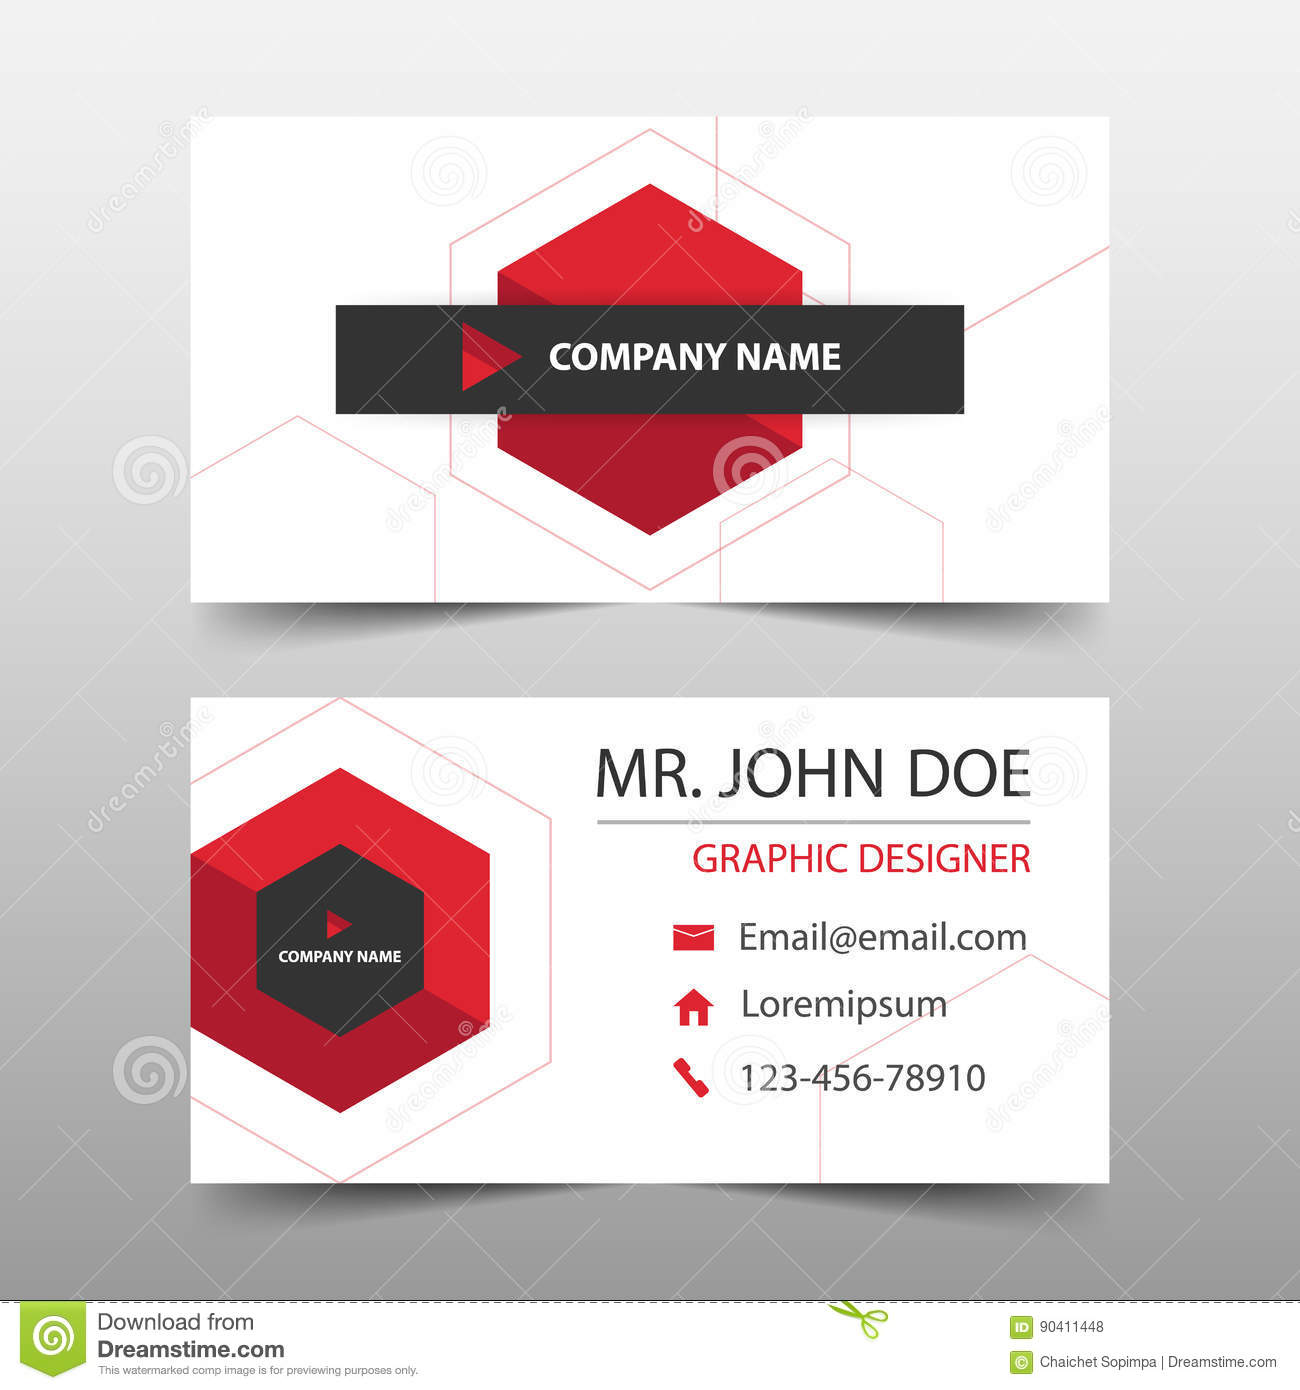 Generous 1 Page Resumes Big 10 Envelope Template Indesign Rectangular 100 Day Plan Template 10x13 Envelope Template Young 16x20 Collage Template Dark18th Birthday Invitation Templates Red Hexagon Corporate Business Card, Name Card Template ..